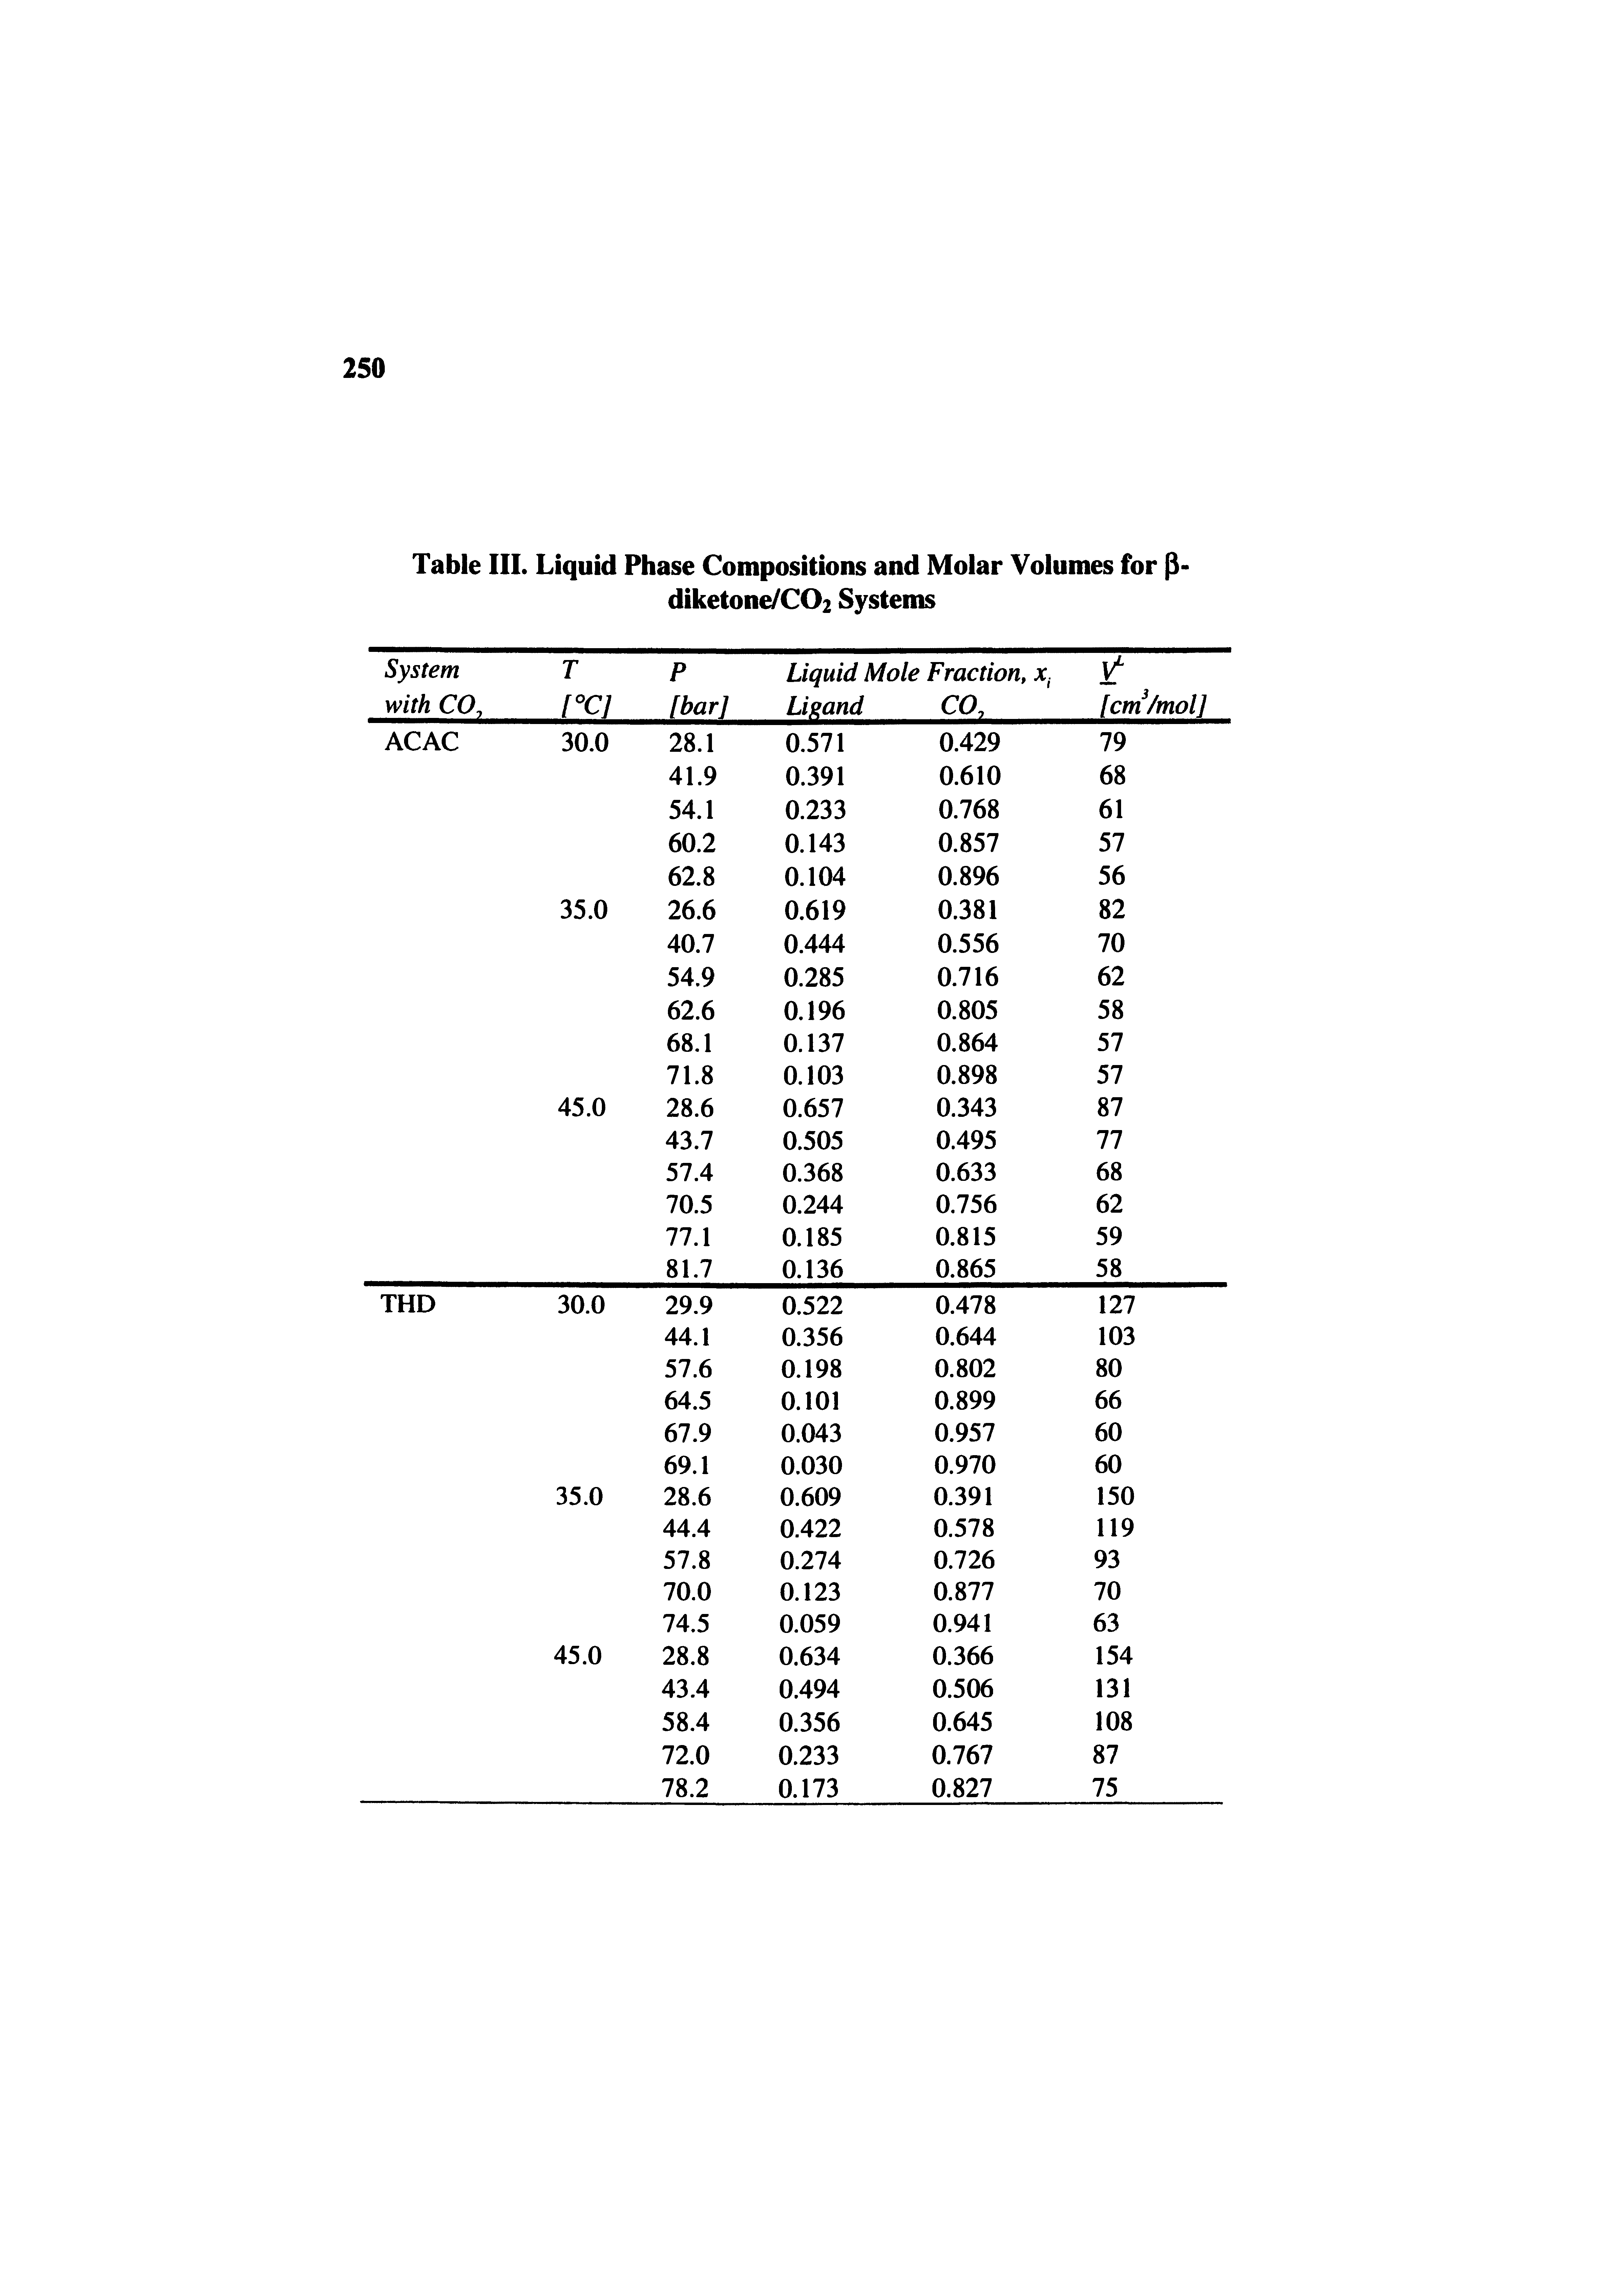 "Table III. <a href=""/info/liquid_phase_and_composition"">Liquid Phase Compositions</a> and <a href=""/info/molar_volume"">Molar Volumes</a> for P-diketone/C02 Systems"